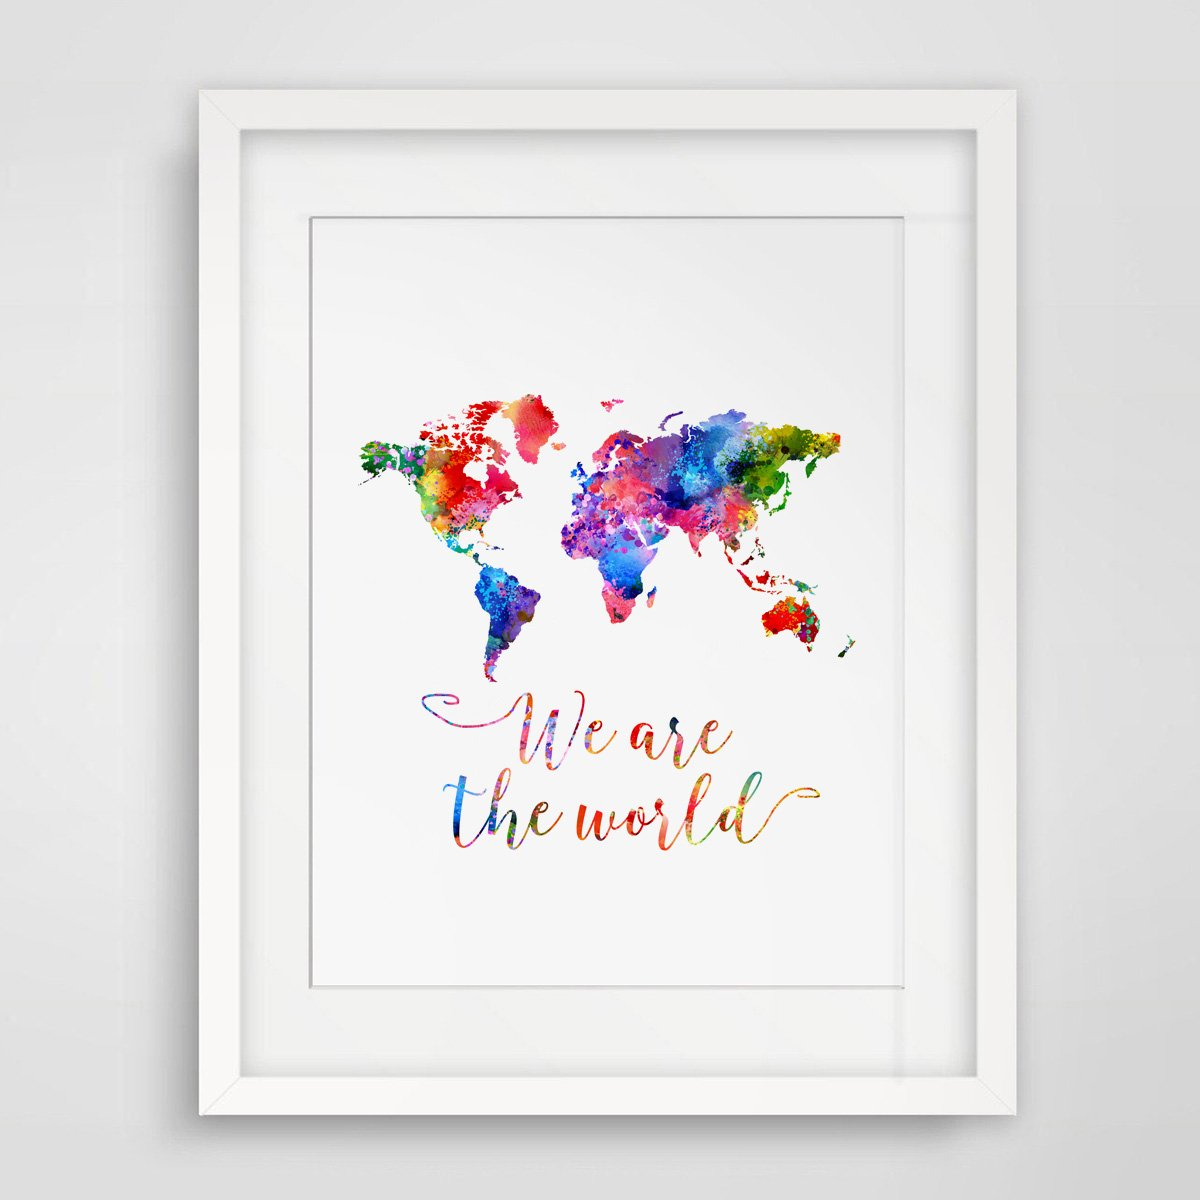 World Map Watercolor Poster - We Are The World